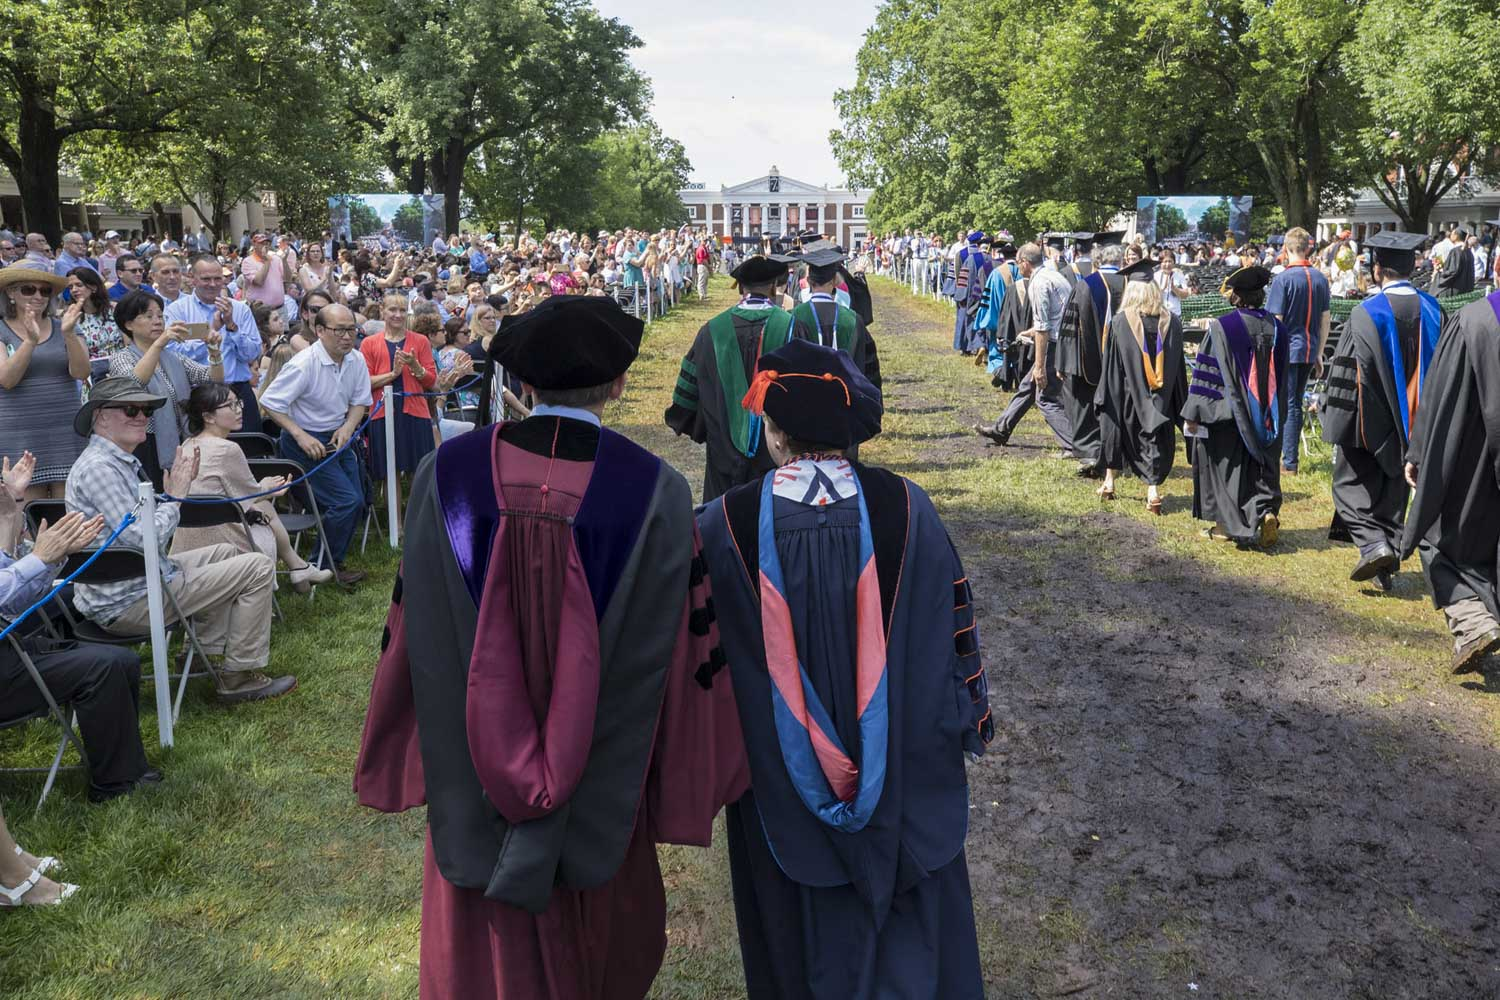 Faculty members walk around the muddy patches on the Lawn during Final Exercises.